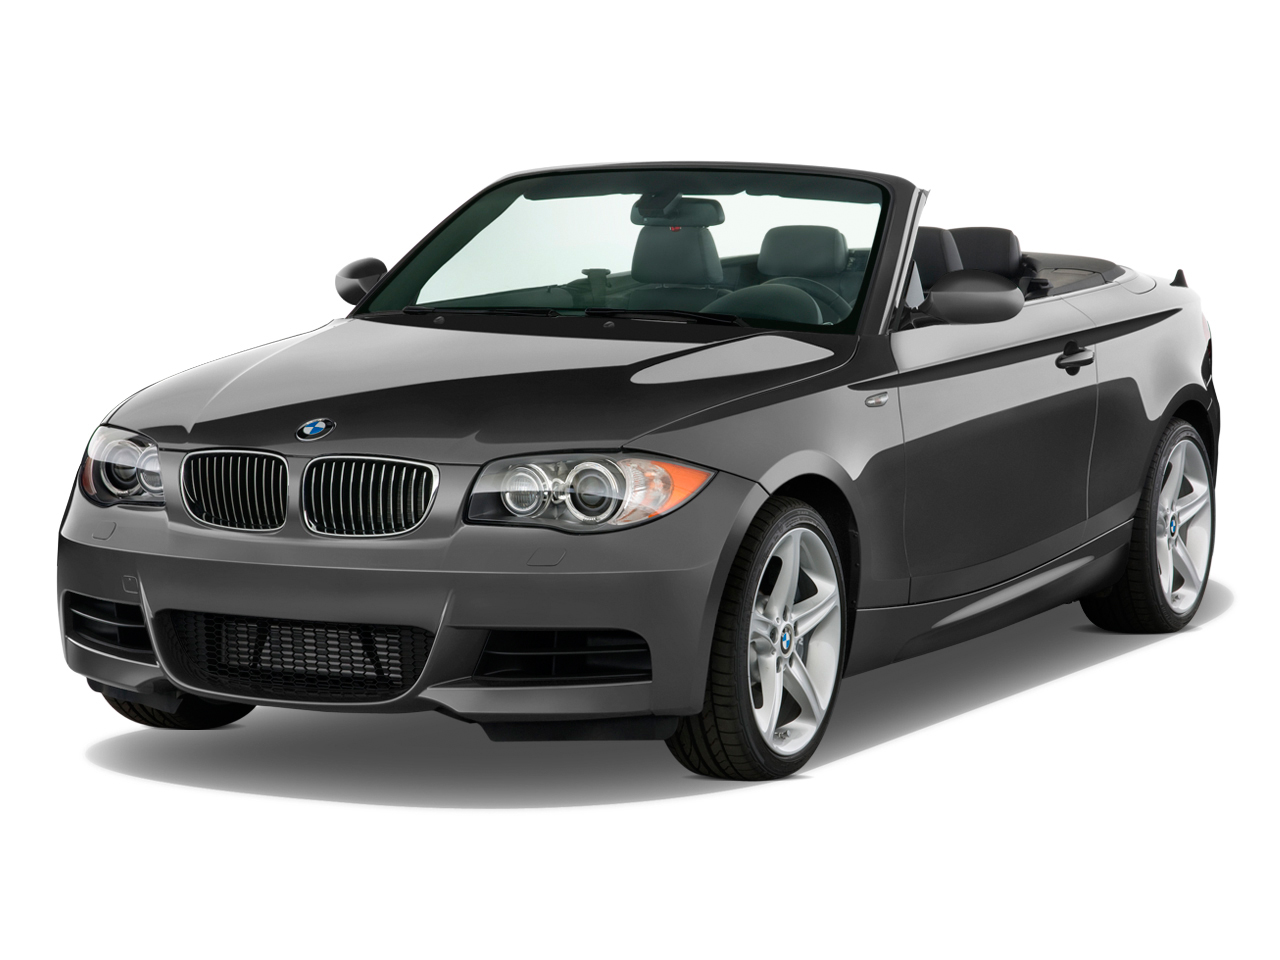 2011 Bmw 1 Series 2 Door Convertible 135i Angular Front